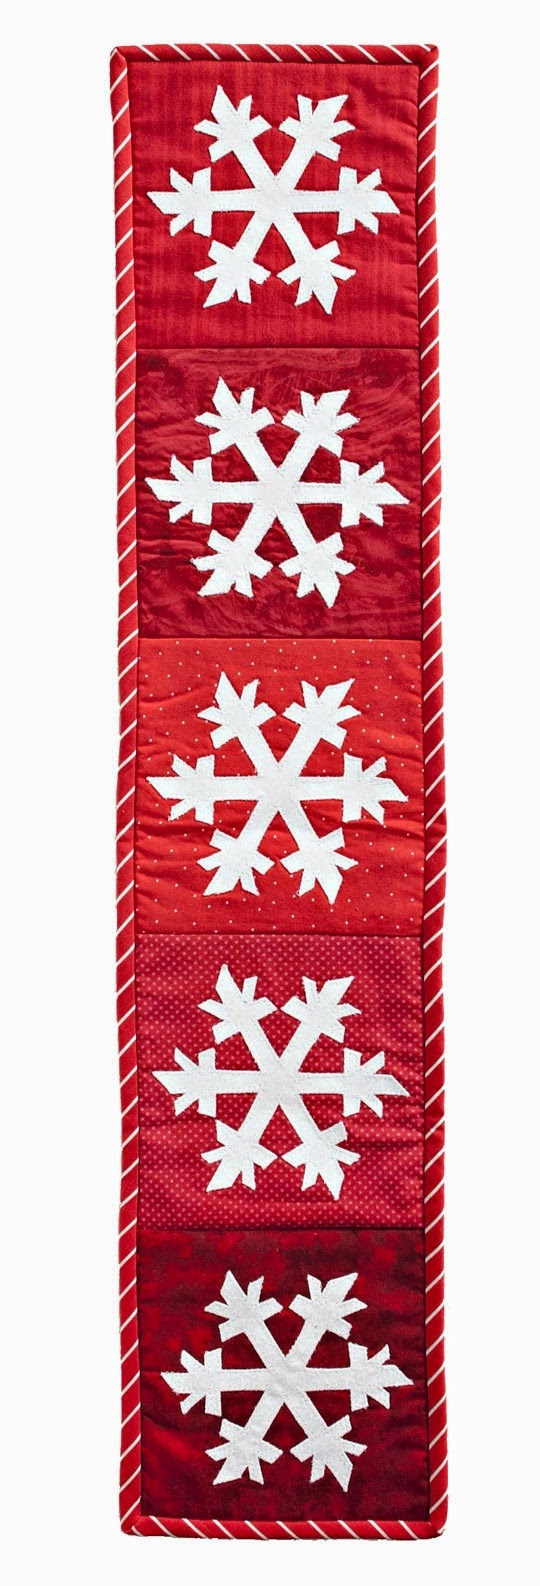 Quilt Inspiration Free Pattern Day Snowflake And